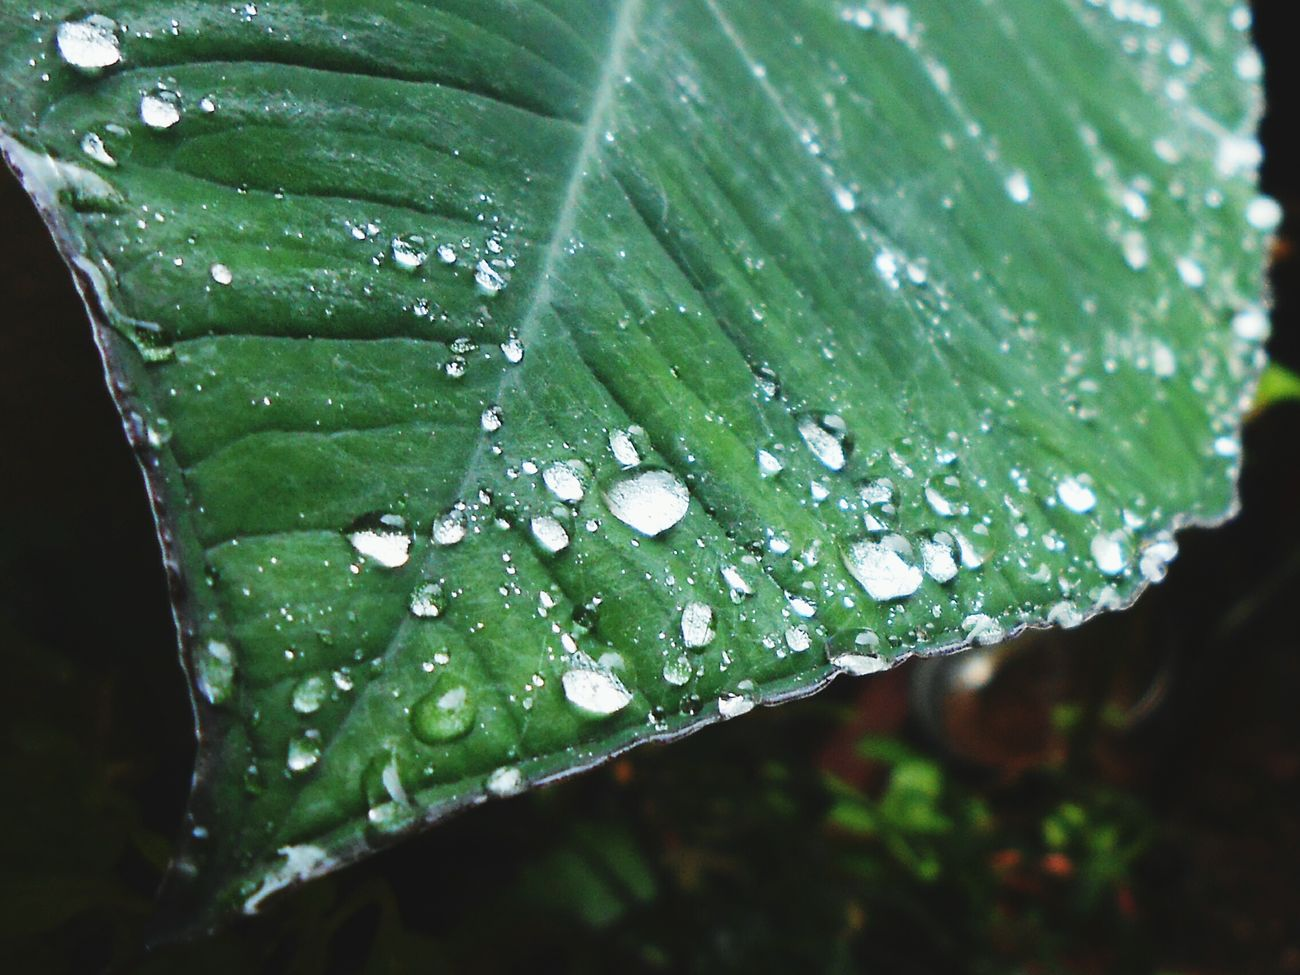 Rains_green_beauty!